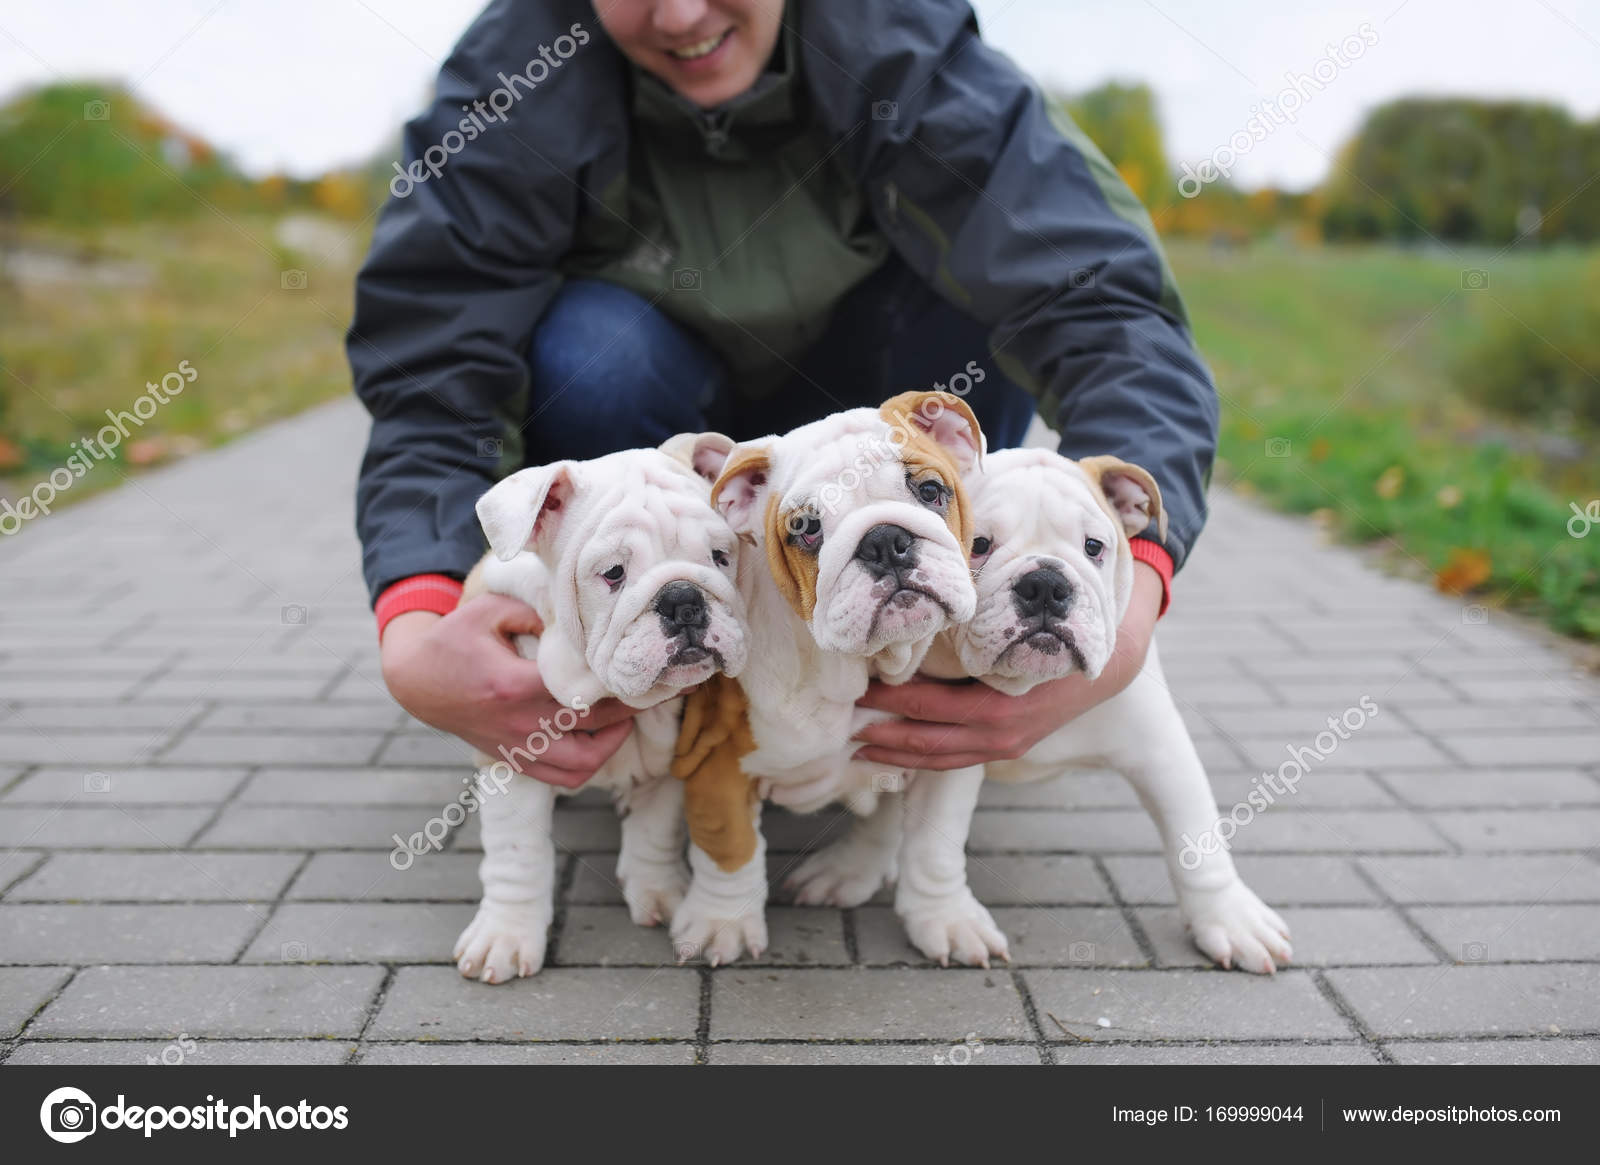 English Bulldog Puppy The Owner Embraces Three Cute Puppies Of A Bulldog Outdoors Stock Photo C Avk78 169999044